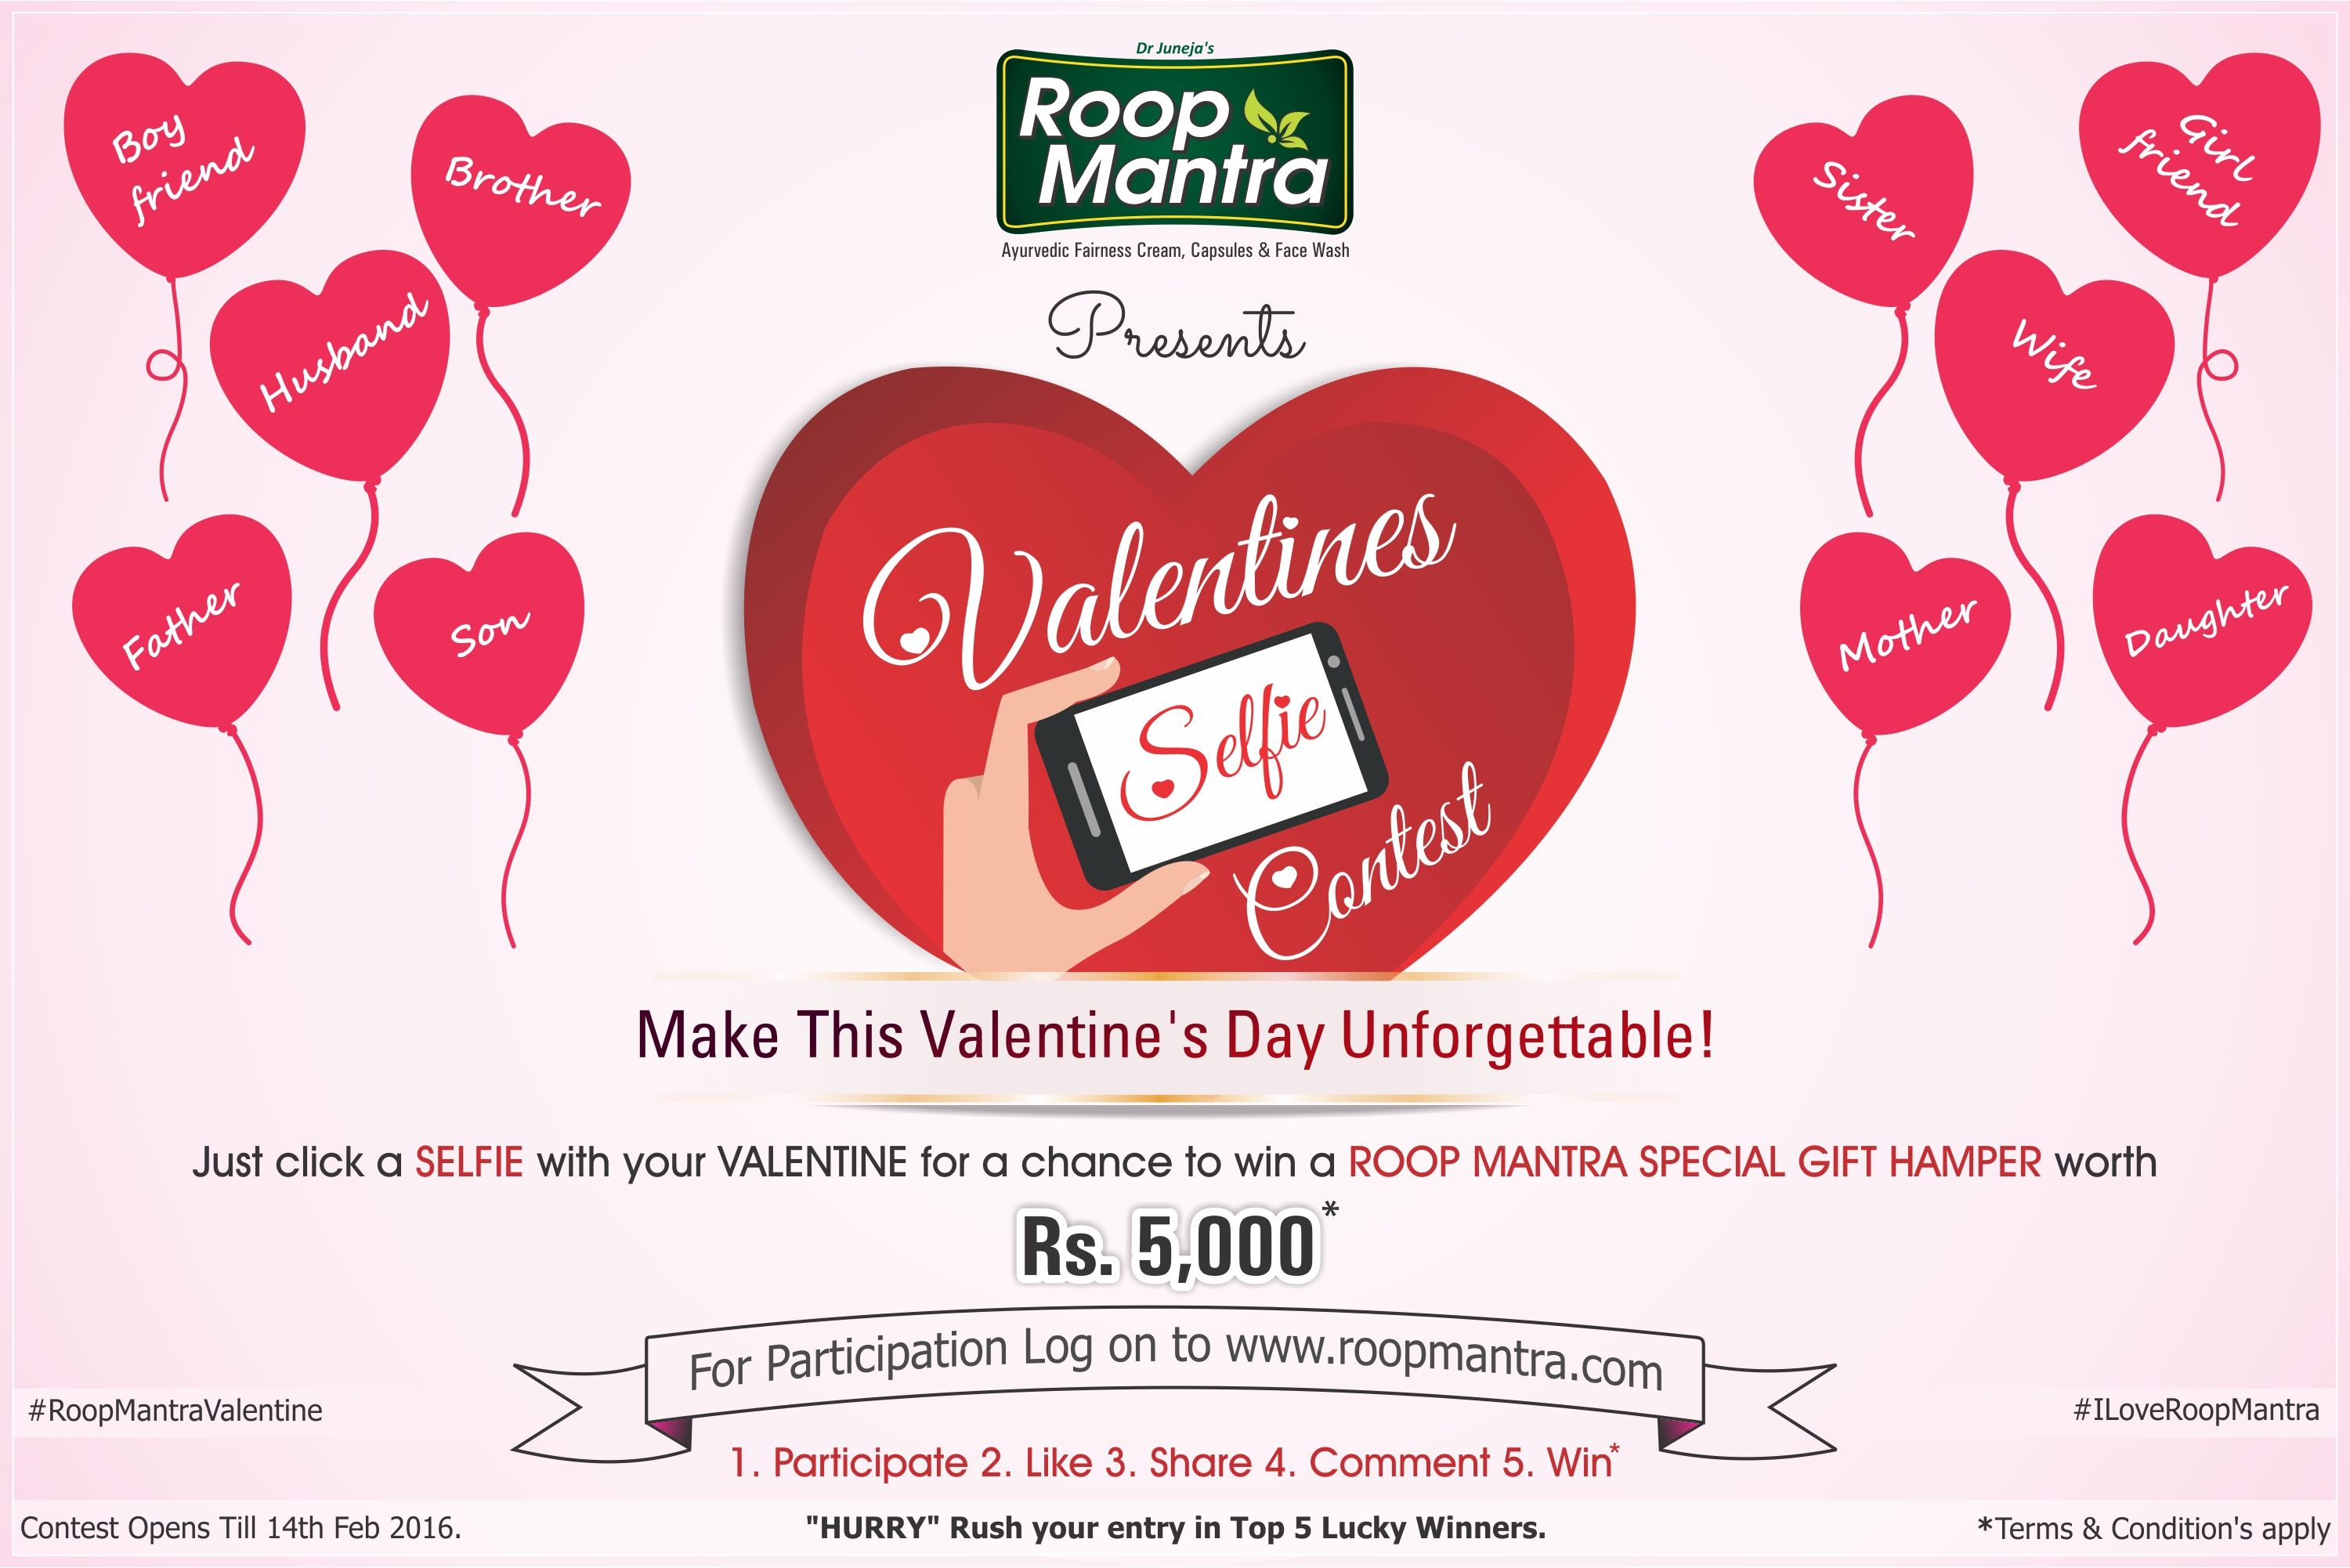 "Roop Mantra Valentines Selfie Contest 2016 ""Make This"